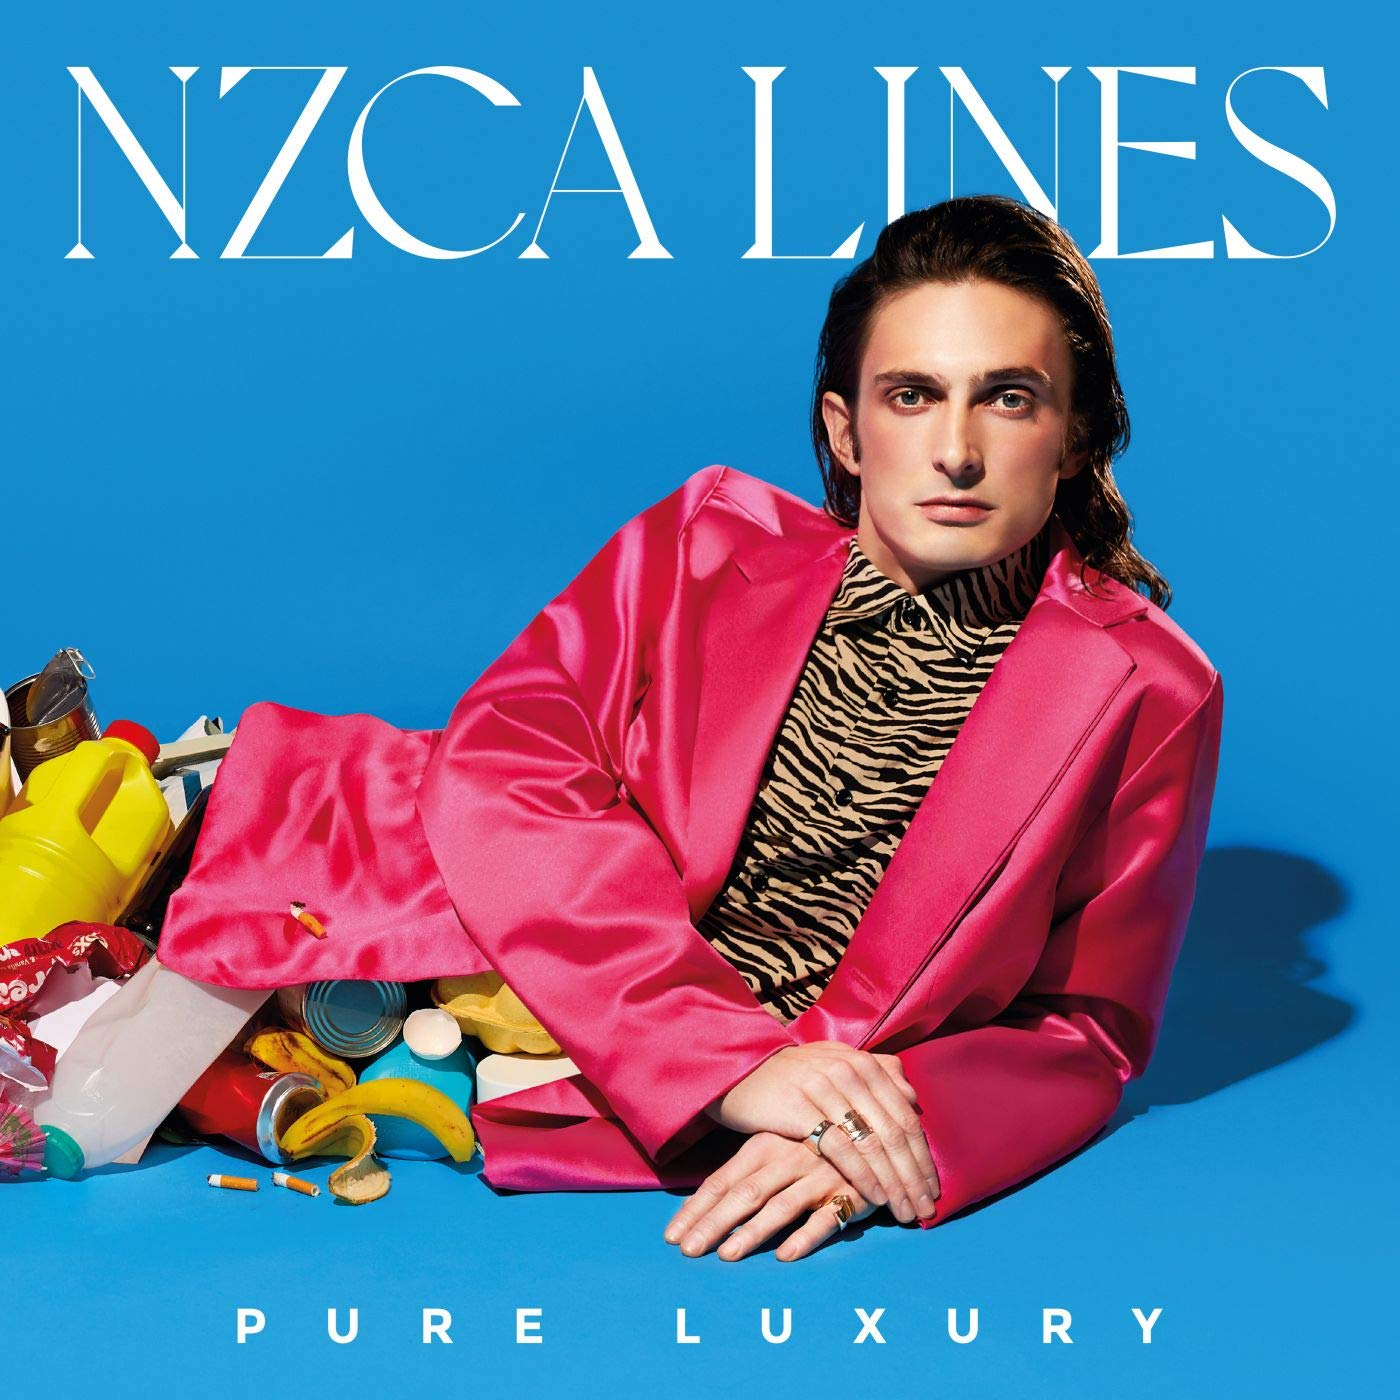 NZCA Lines - Pure Luxury (2020) [FLAC] Download